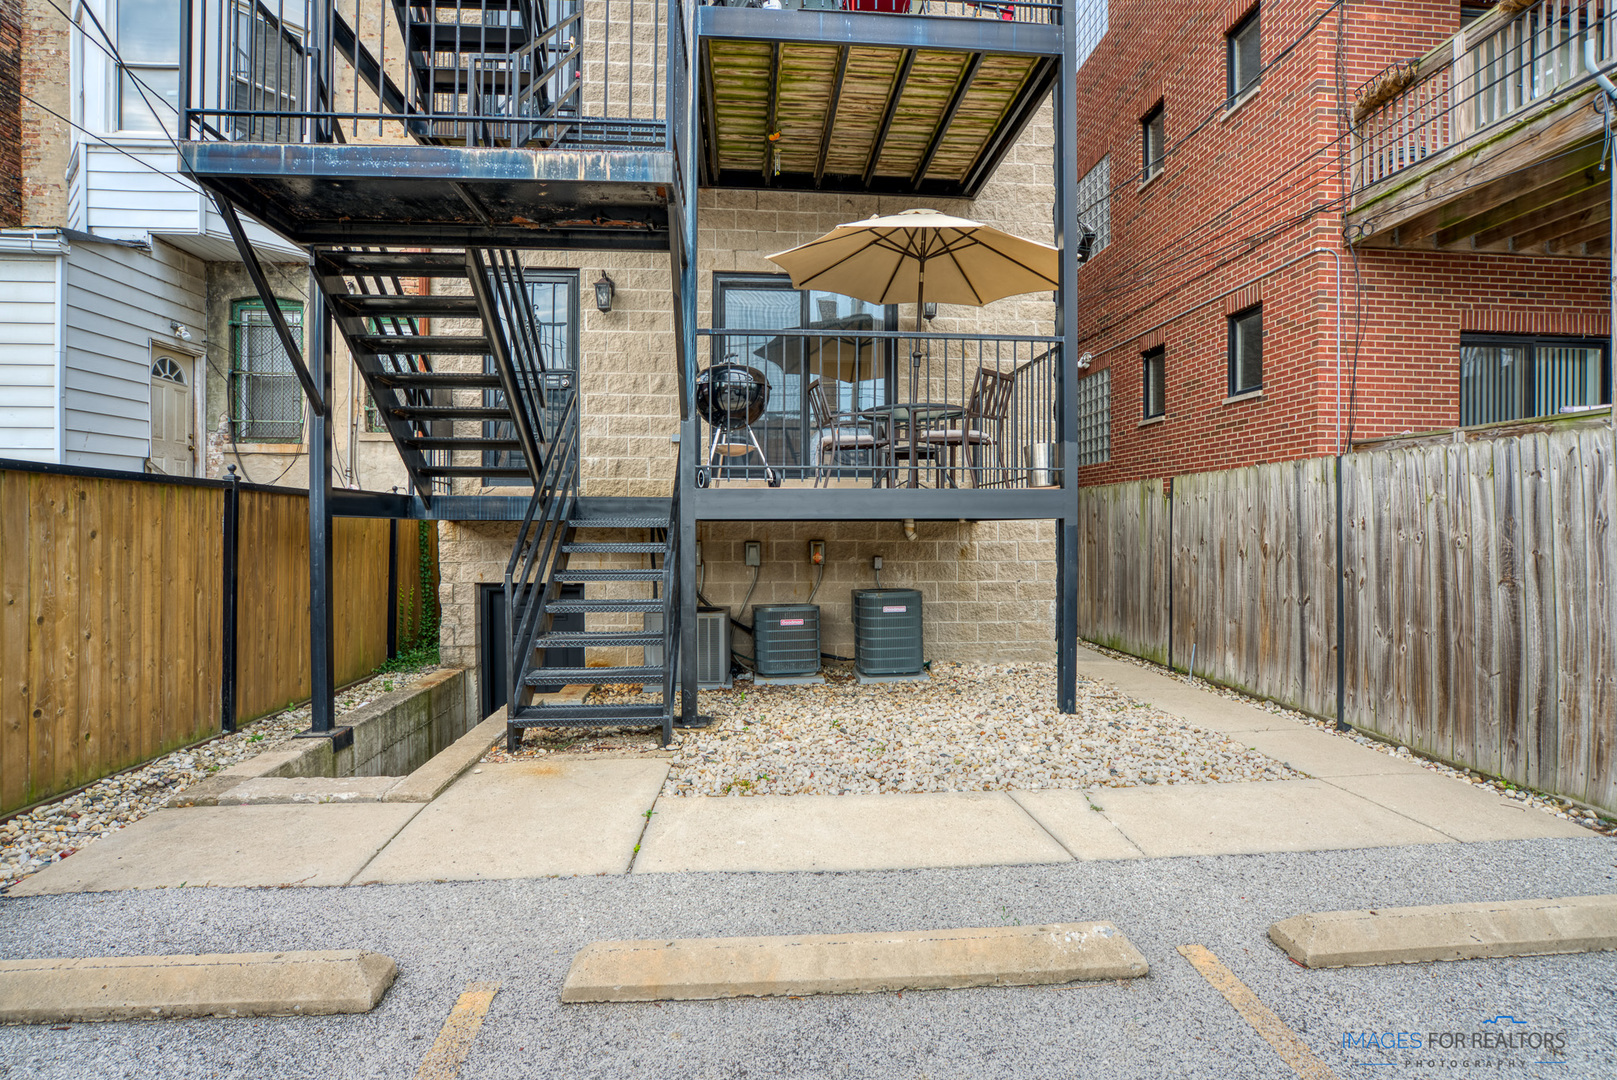 4211 Vincennes Unit Unit 1 ,Chicago, Illinois 60653